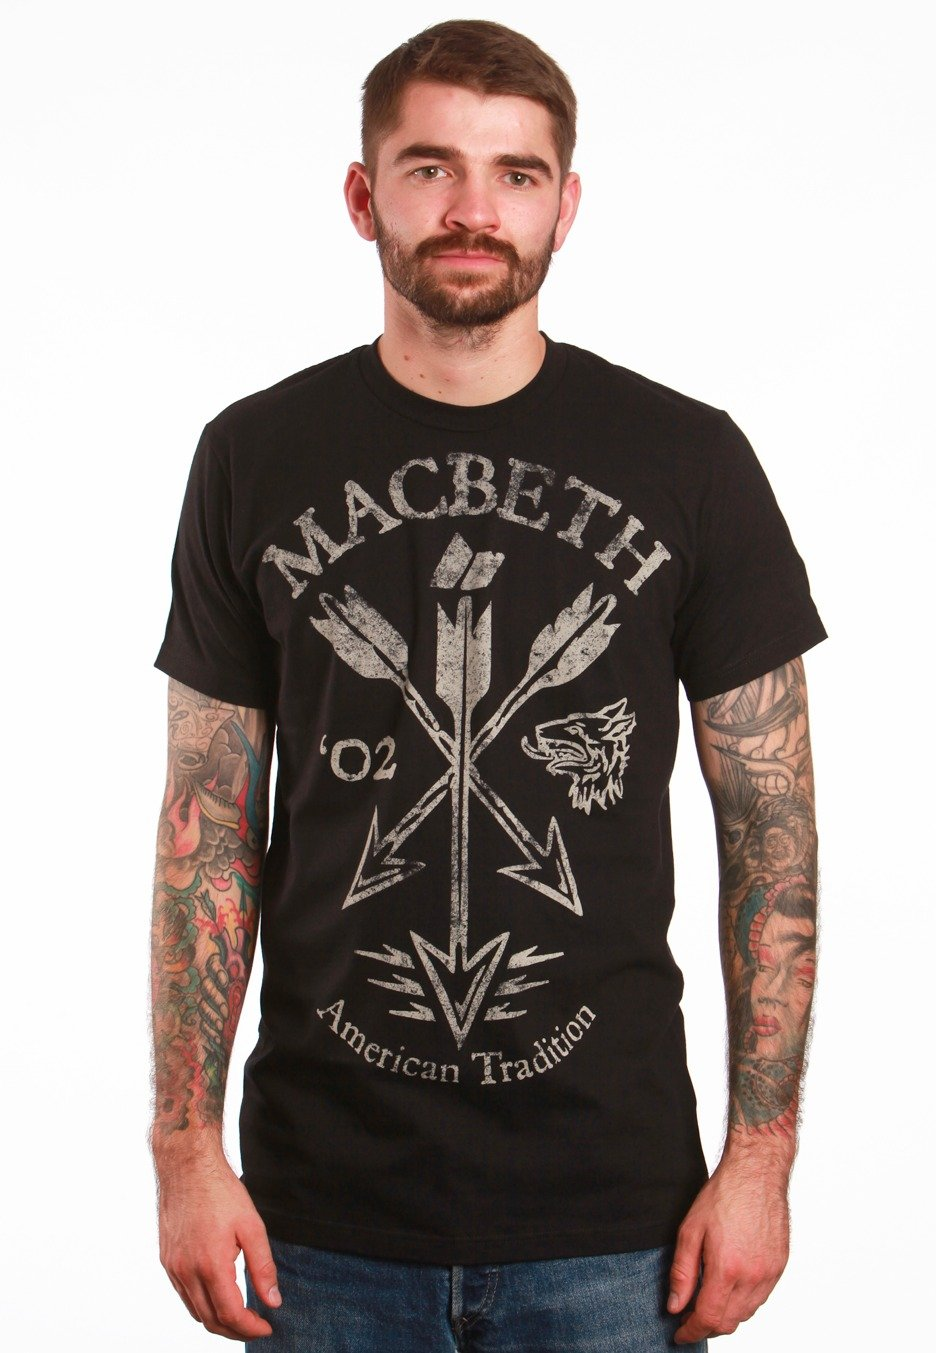 Color Changing Shirts >> Macbeth - American Tradition - T-Shirt - Impericon.com UK